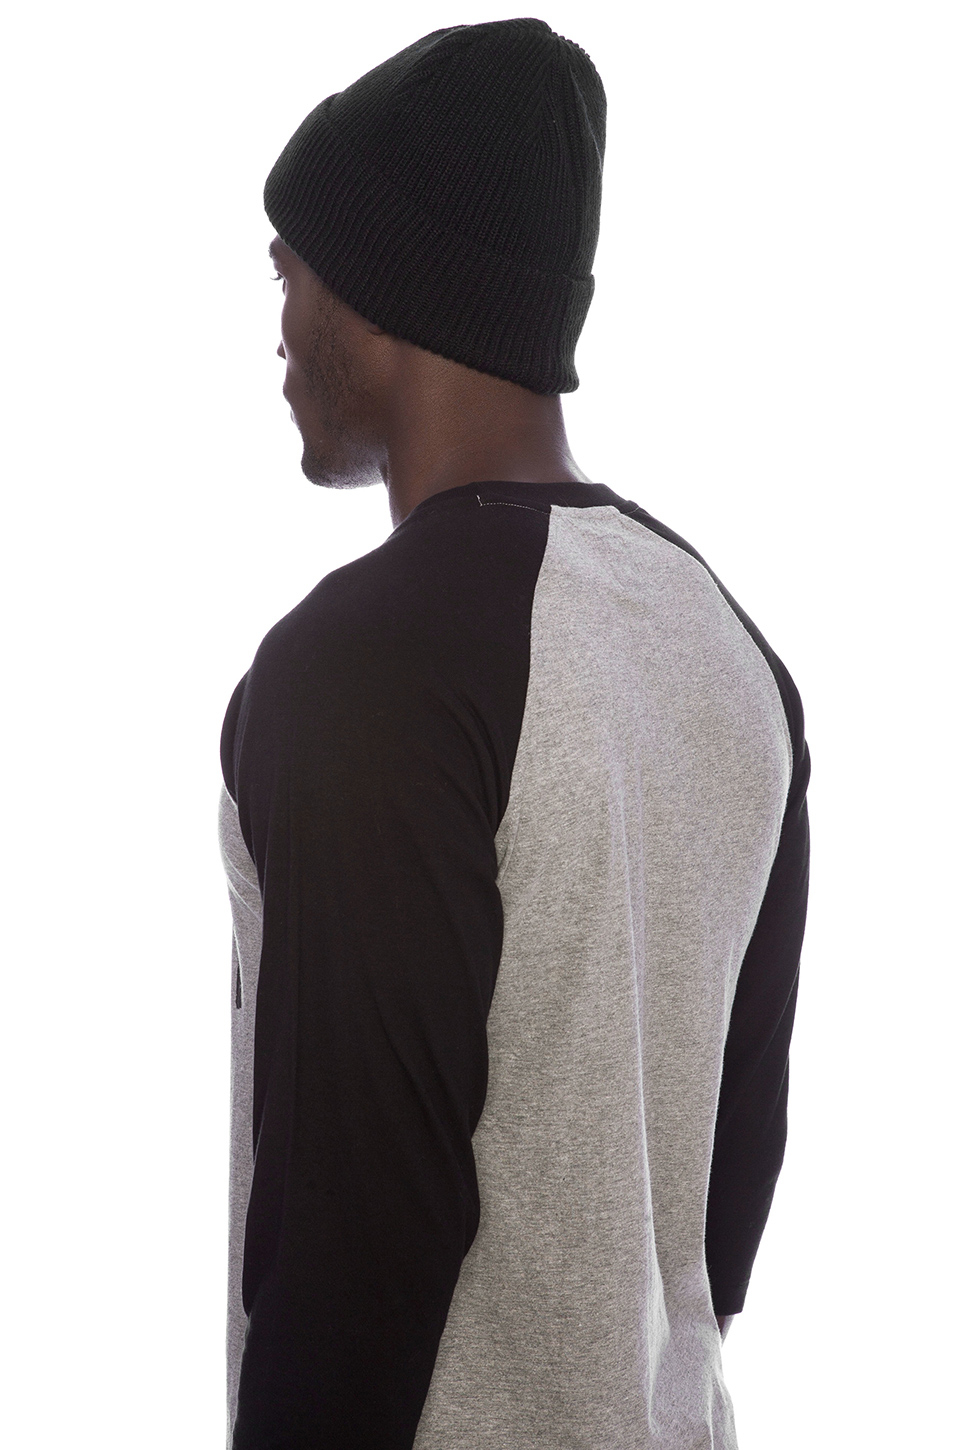 ... website for discount 85370 27f2e Lyst - Stussy Leather Patch Beanie in  Black for Men ... 9dd93a938d03